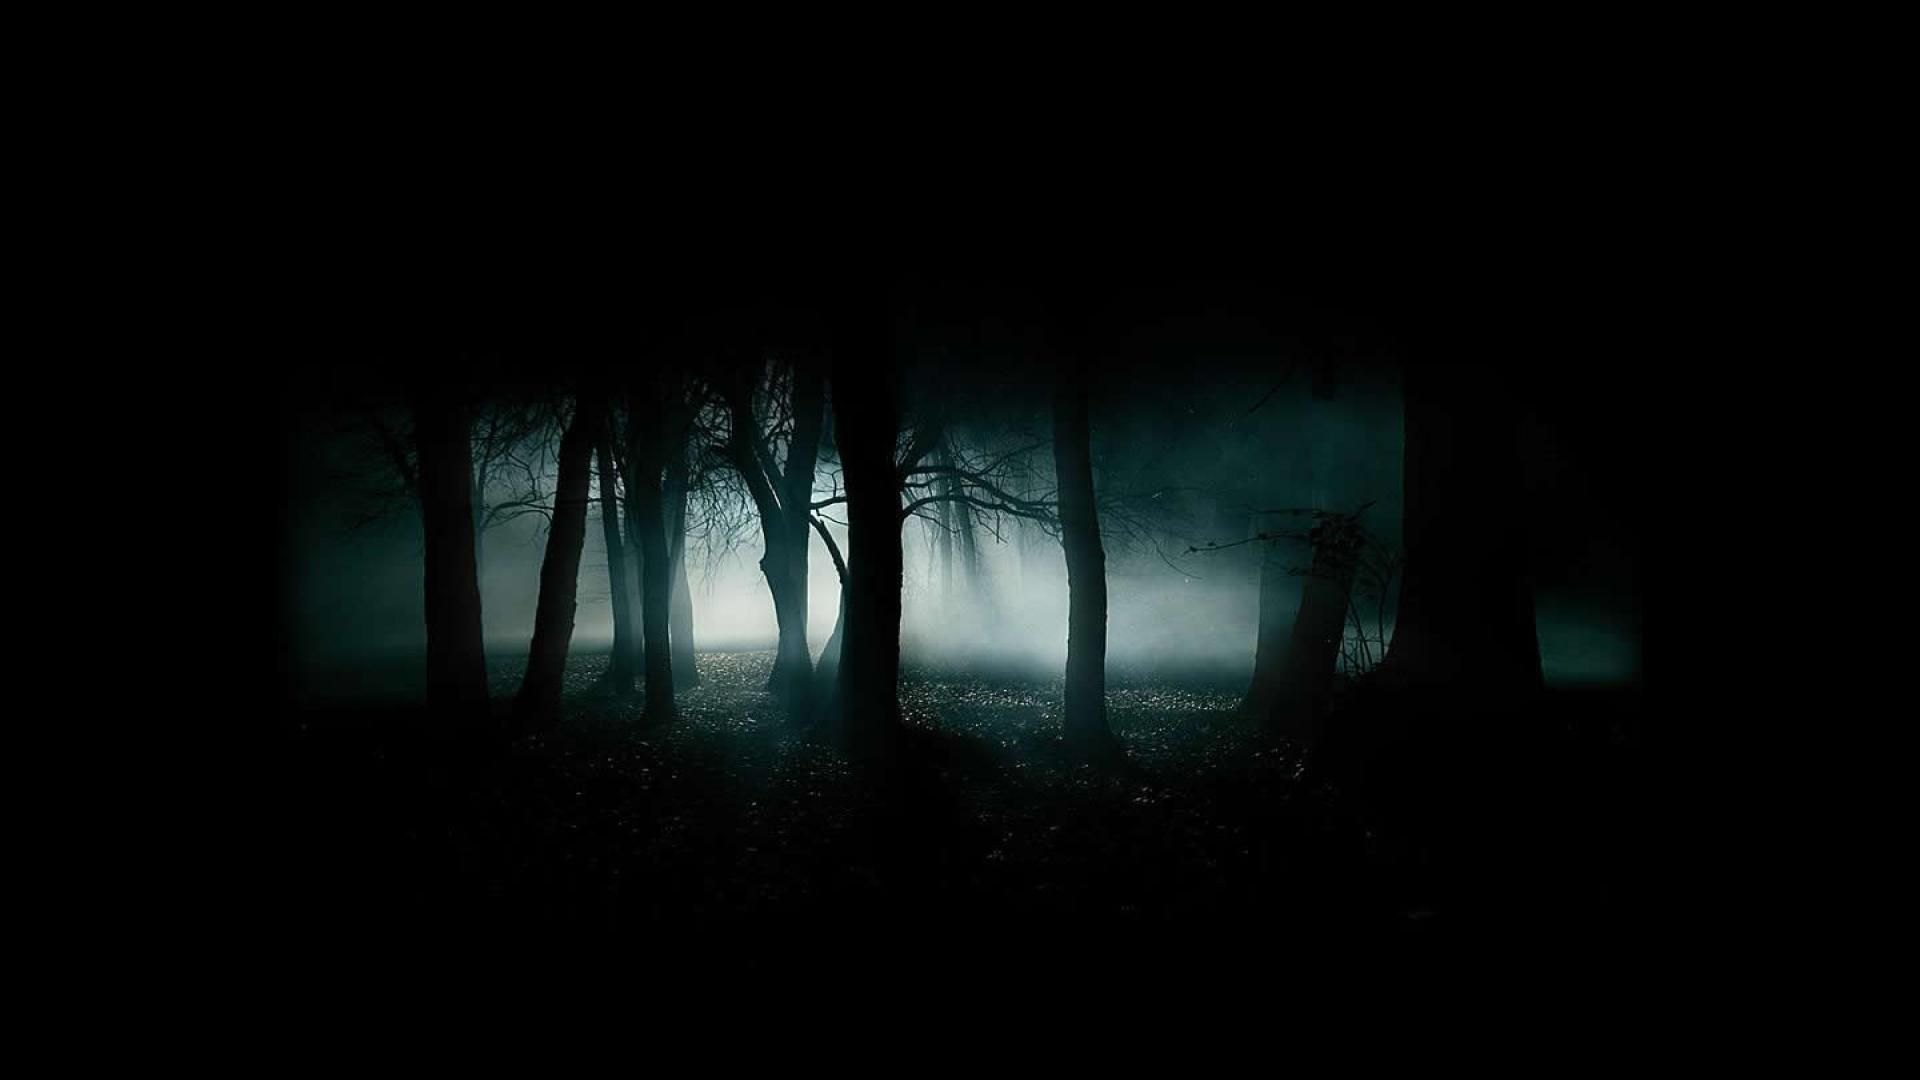 1920x1080 Creepy Wallpaper Mobile in 2019   Scary backgrounds, Dark ...